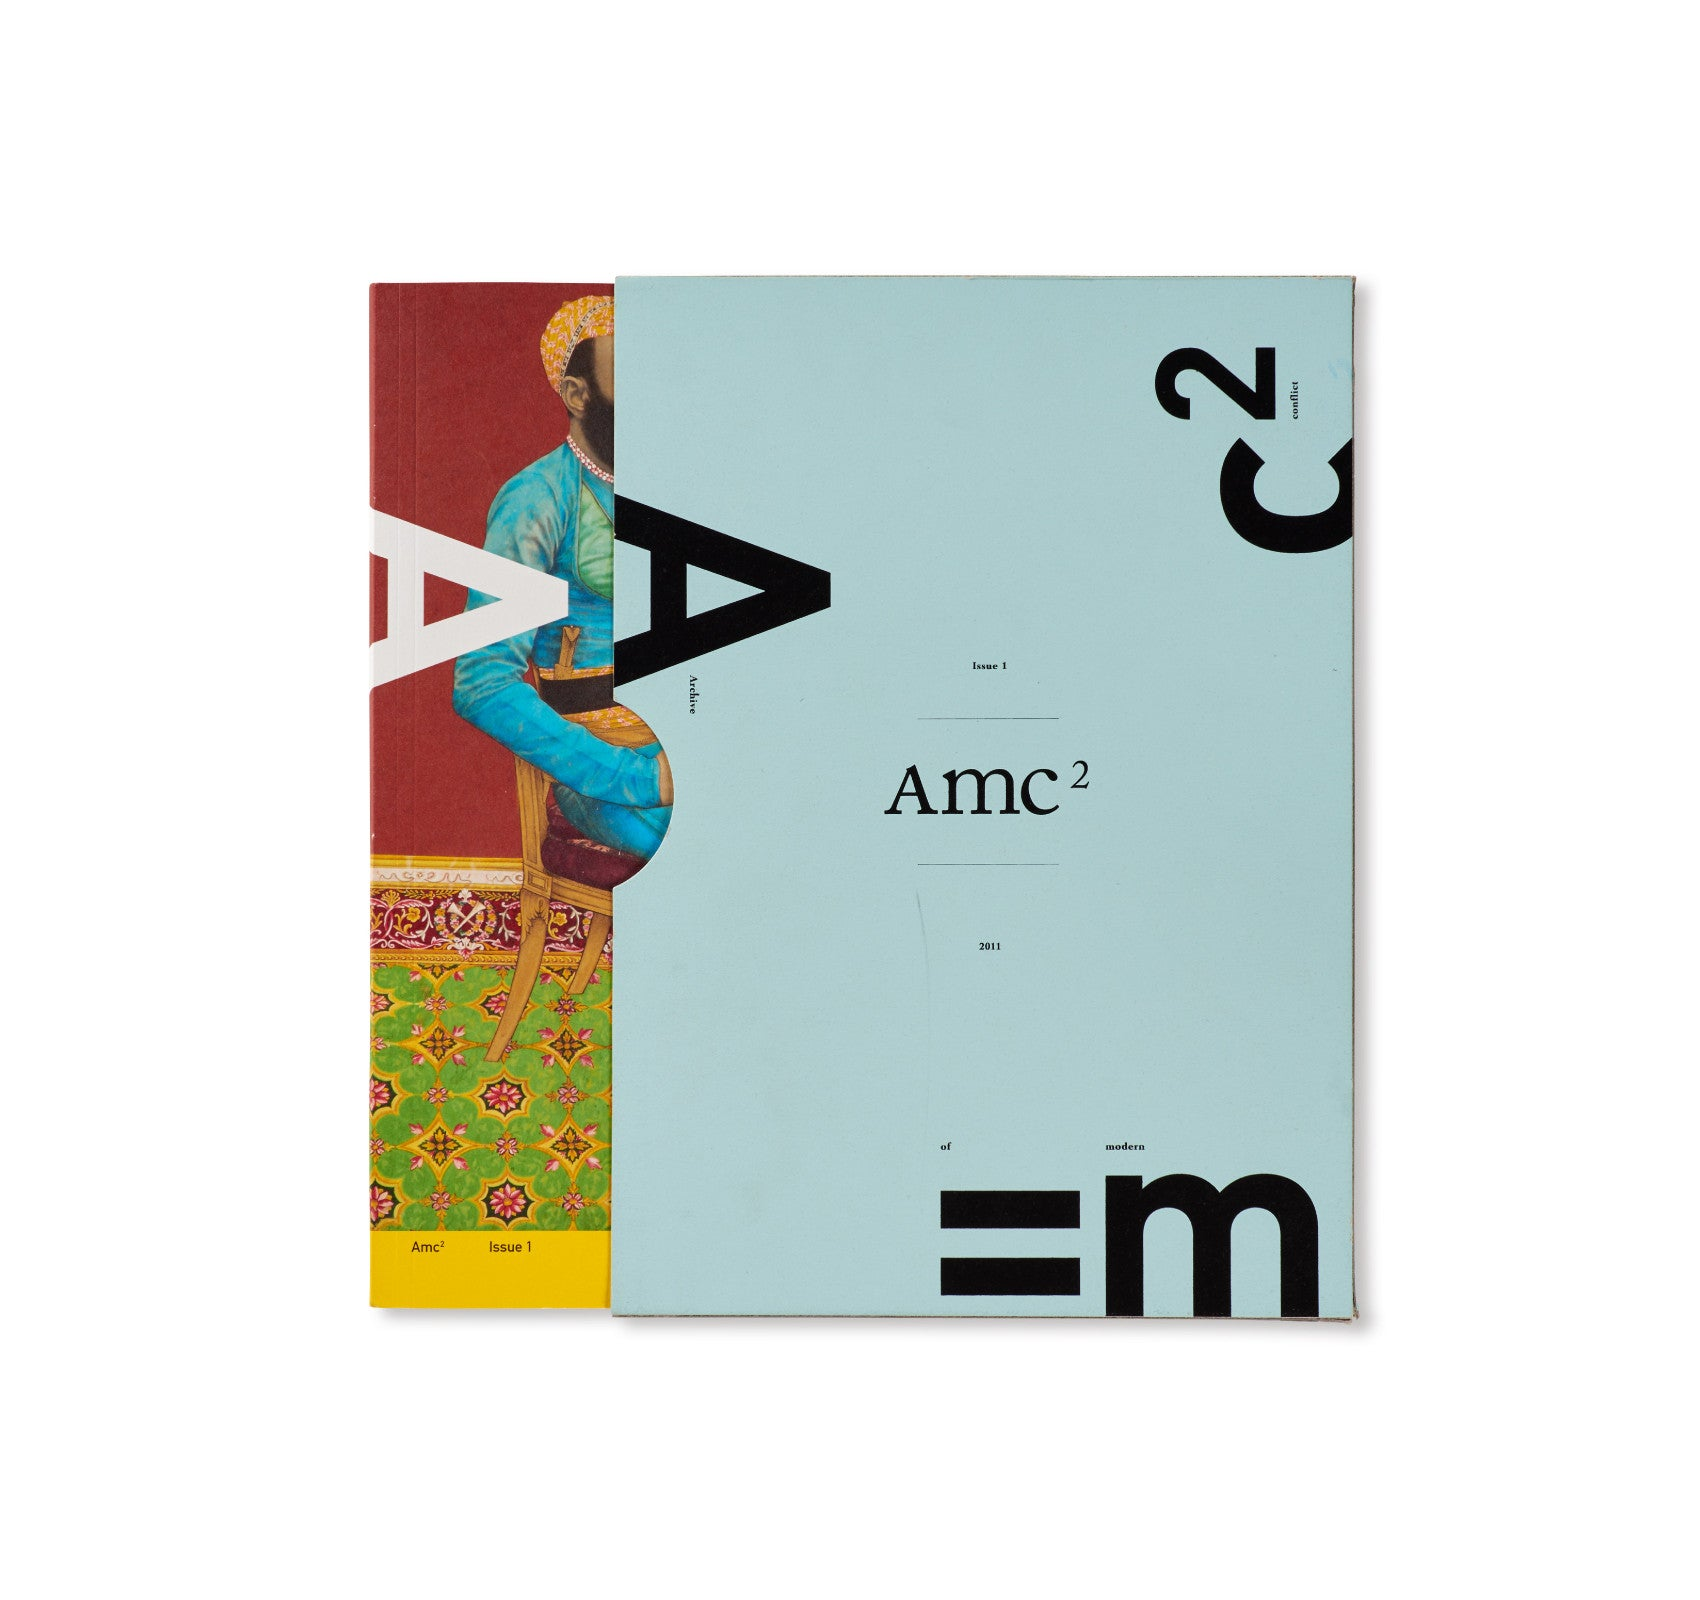 AMC2 JOURNAL ISSUE 1